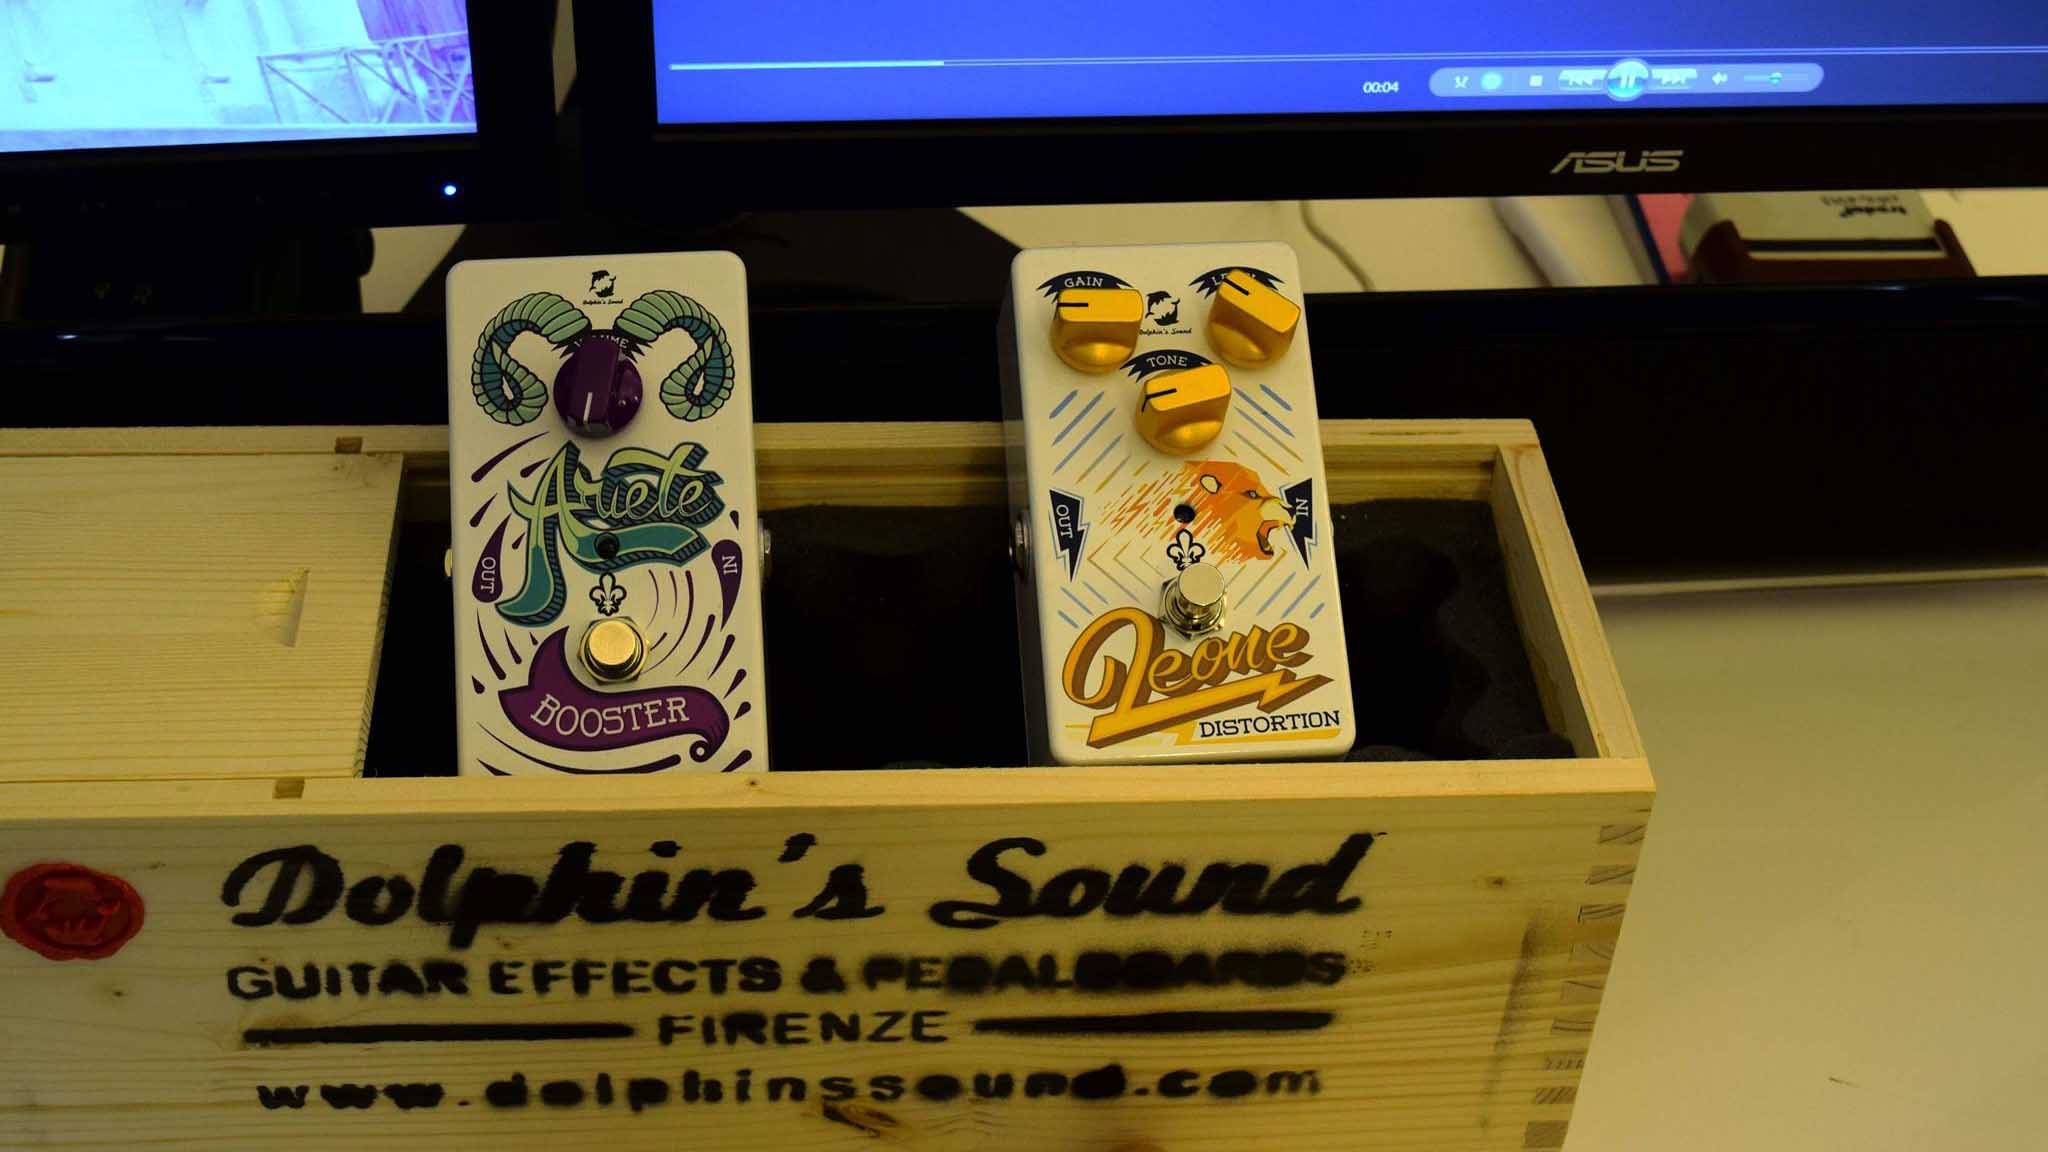 Stand Dolphins Sound AccordoShow Milano  - AccordoShow Milano Custom Shop - Made in Italy in fiera